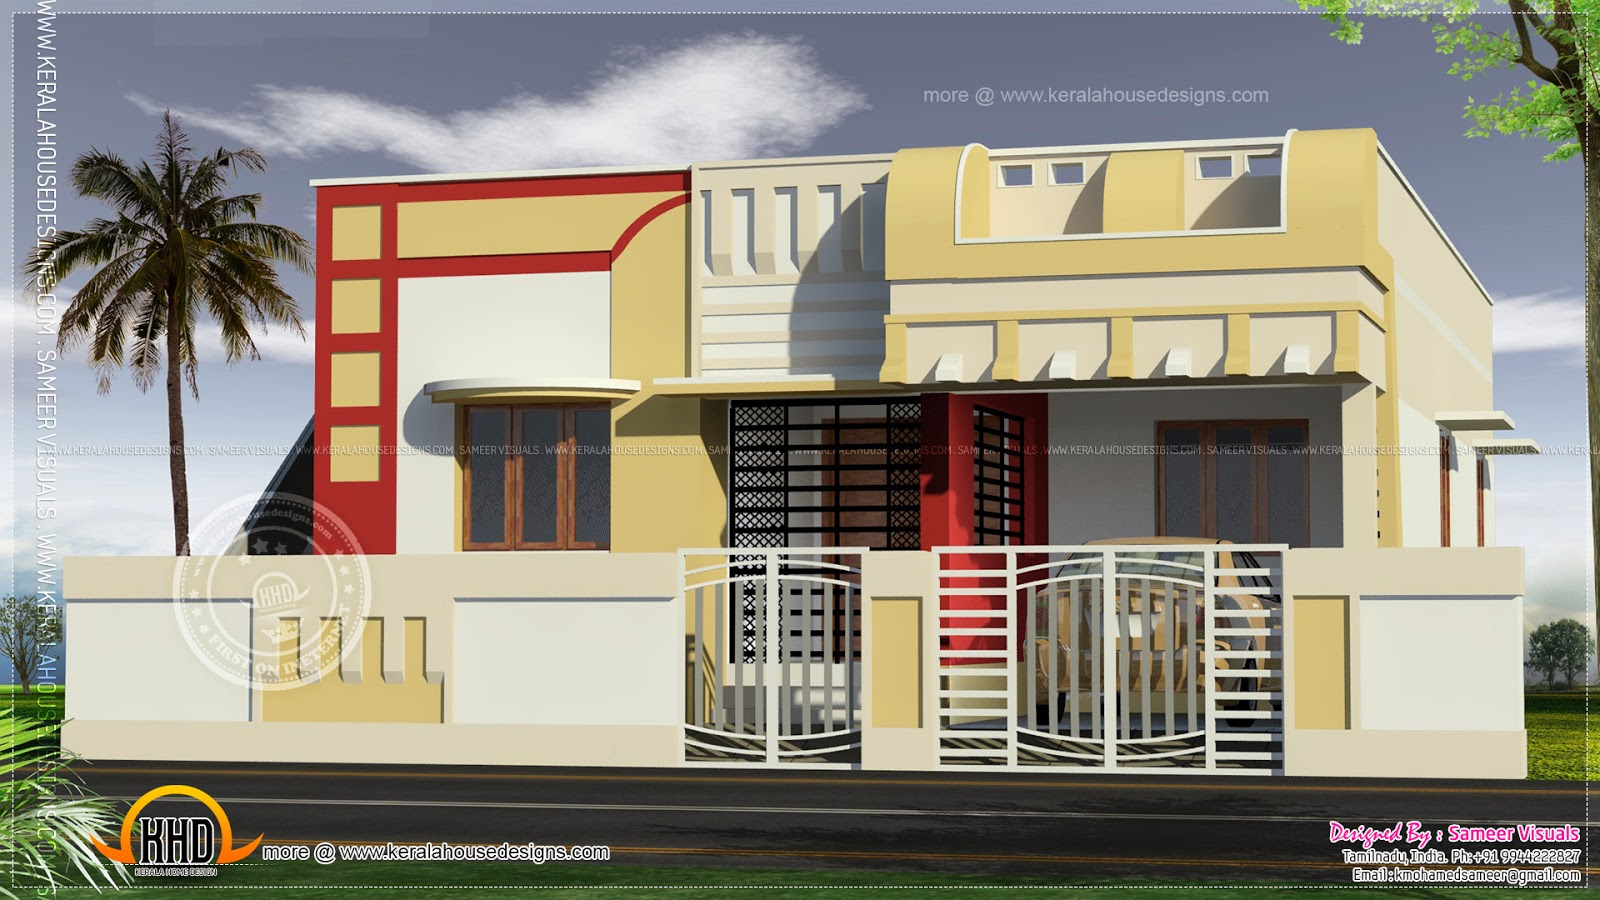 Epic Small South Indian Home Design - Kerala Home Design And Floor Plans with Indian Home Elevation Design Photo Gallery